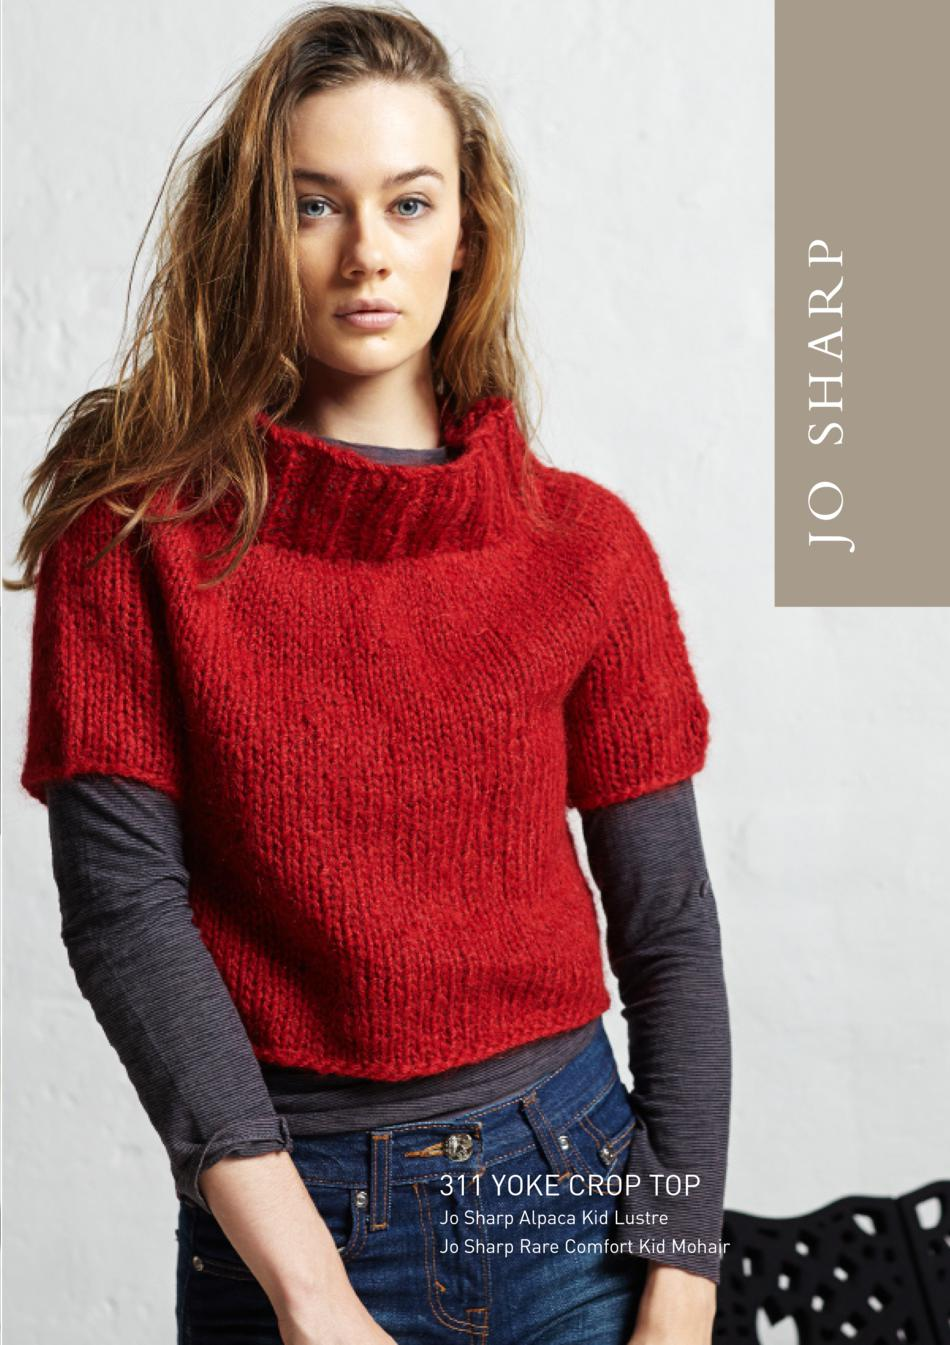 Knitting Patterns Jo Sharp Yoke Crop Top Pattern